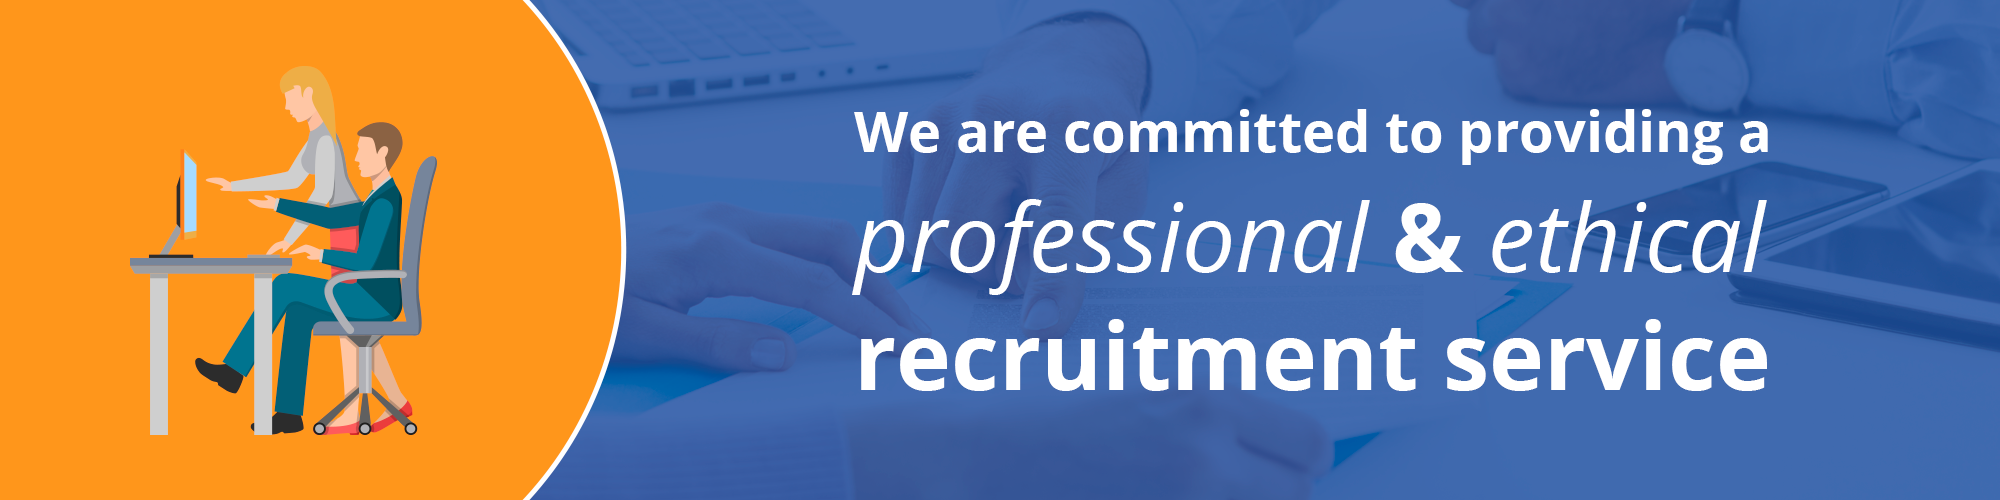 We are committed to providing a professional and ethical recruitment service